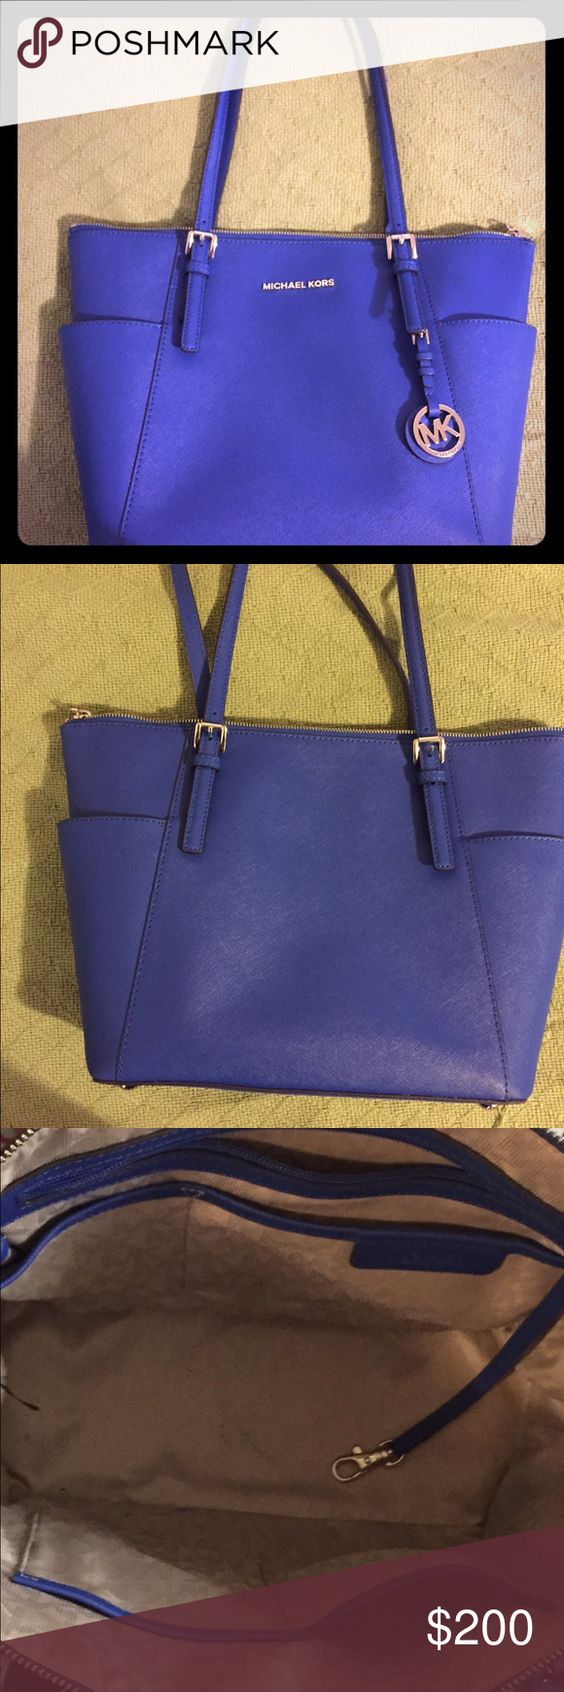 Michael Kors Jet Set Large Zip Tote Sleek Leather Tote in Great condition. Some minor pen marks on the inside. MICHAEL Michael Kors Bags Totes